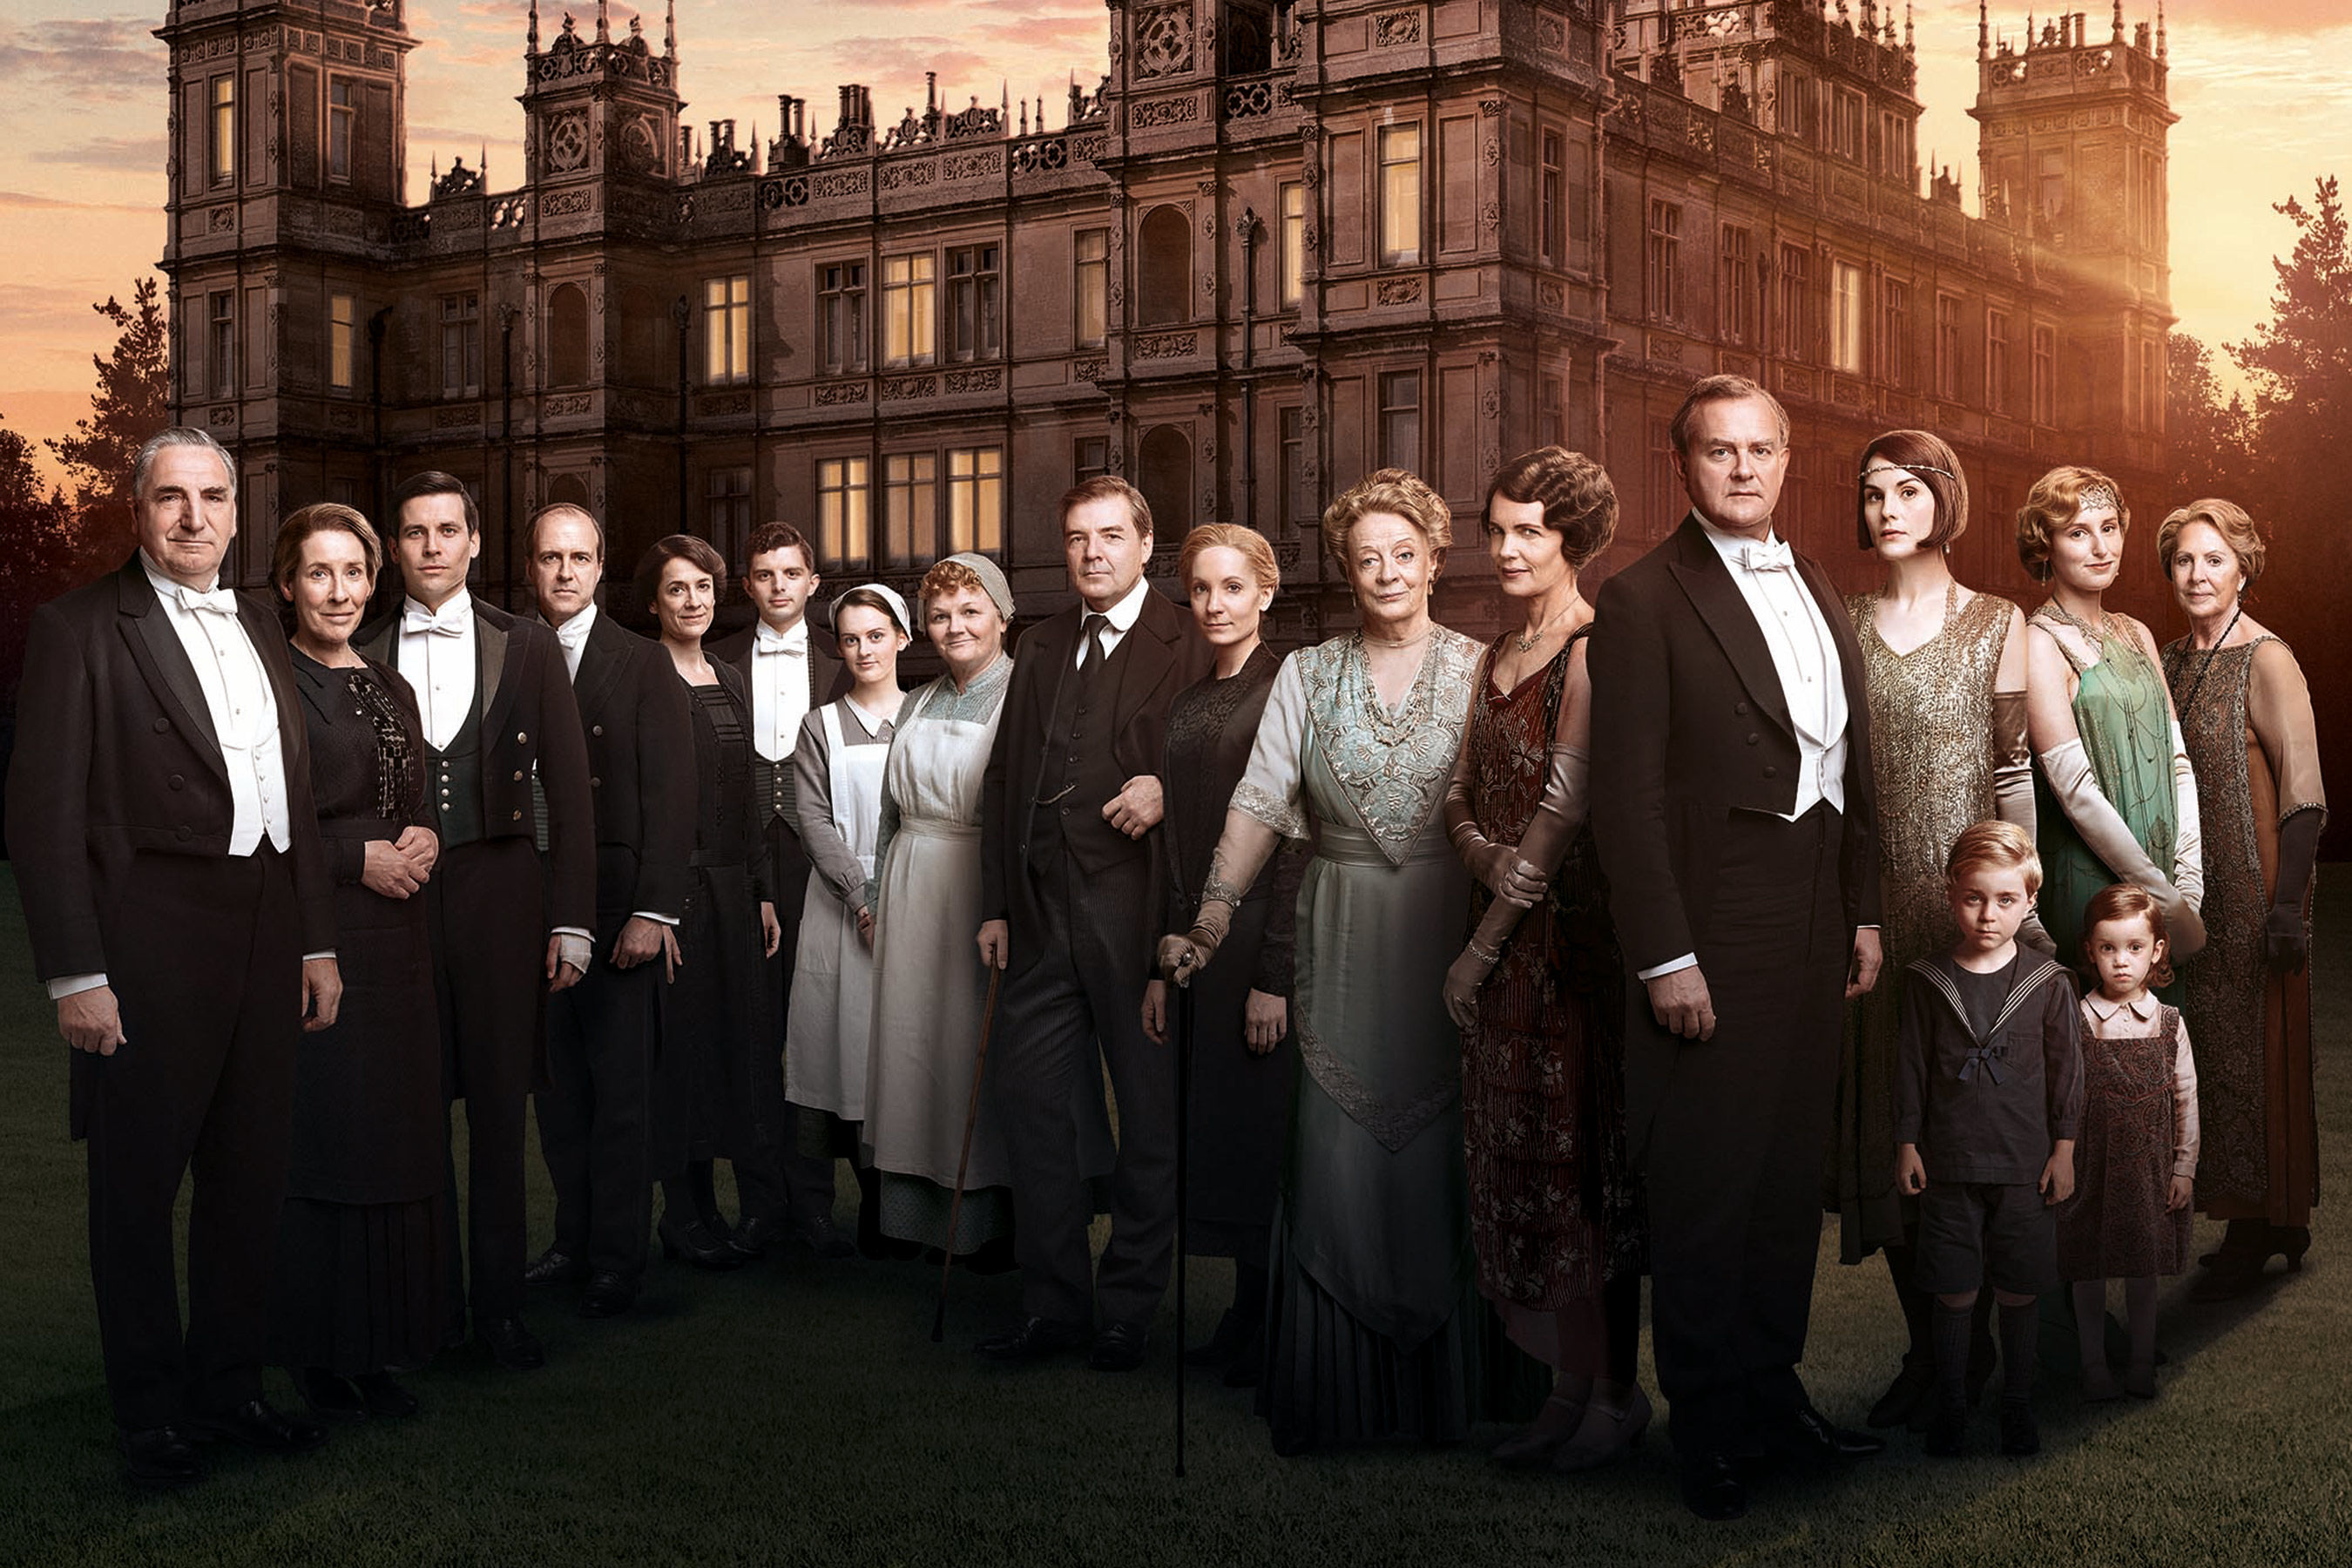 Downton Abbey Movie Is Officially Happening With Series Cast to Return